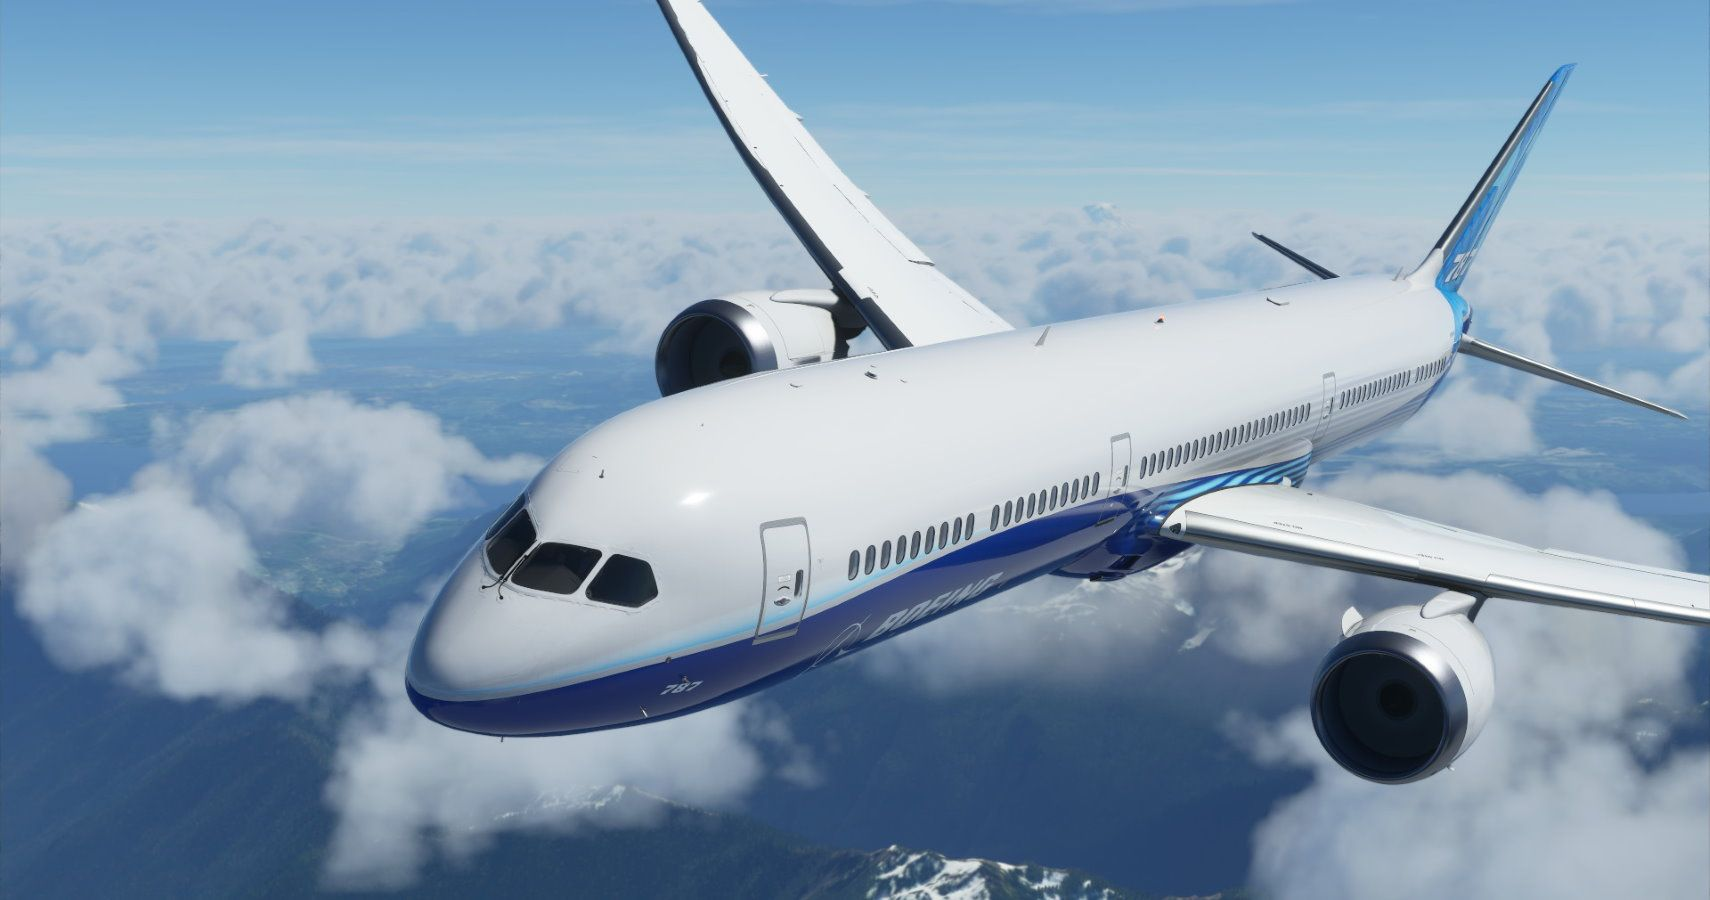 Microsoft Flight Simulator 2020 Isn't Approved For Sale In ...